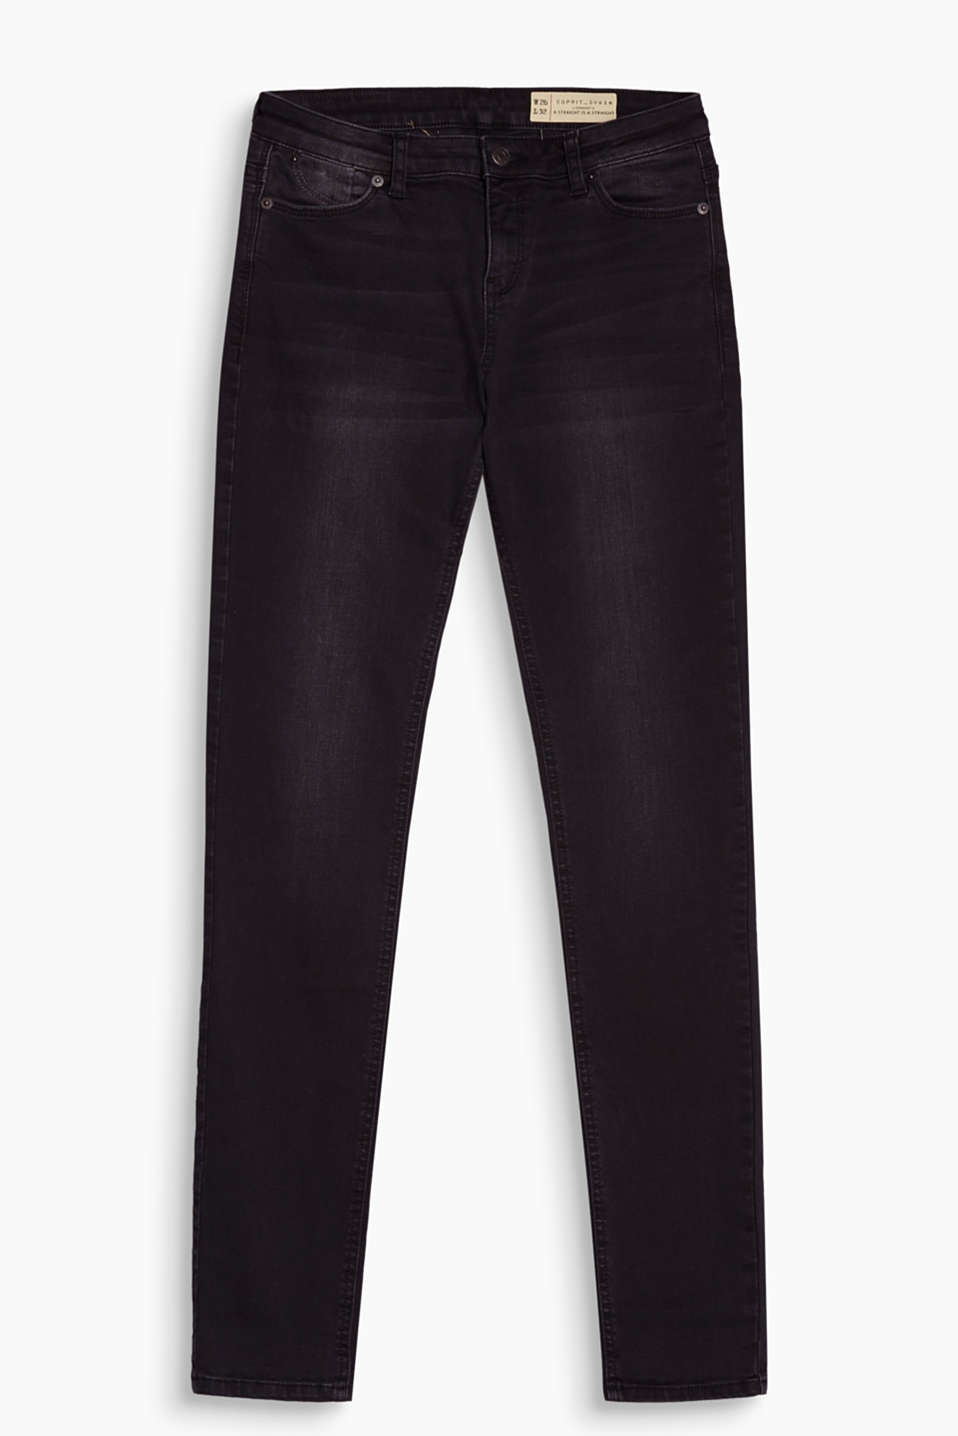 Basic in black: stretch denim with a straight leg and a new semi-circular coin pocket